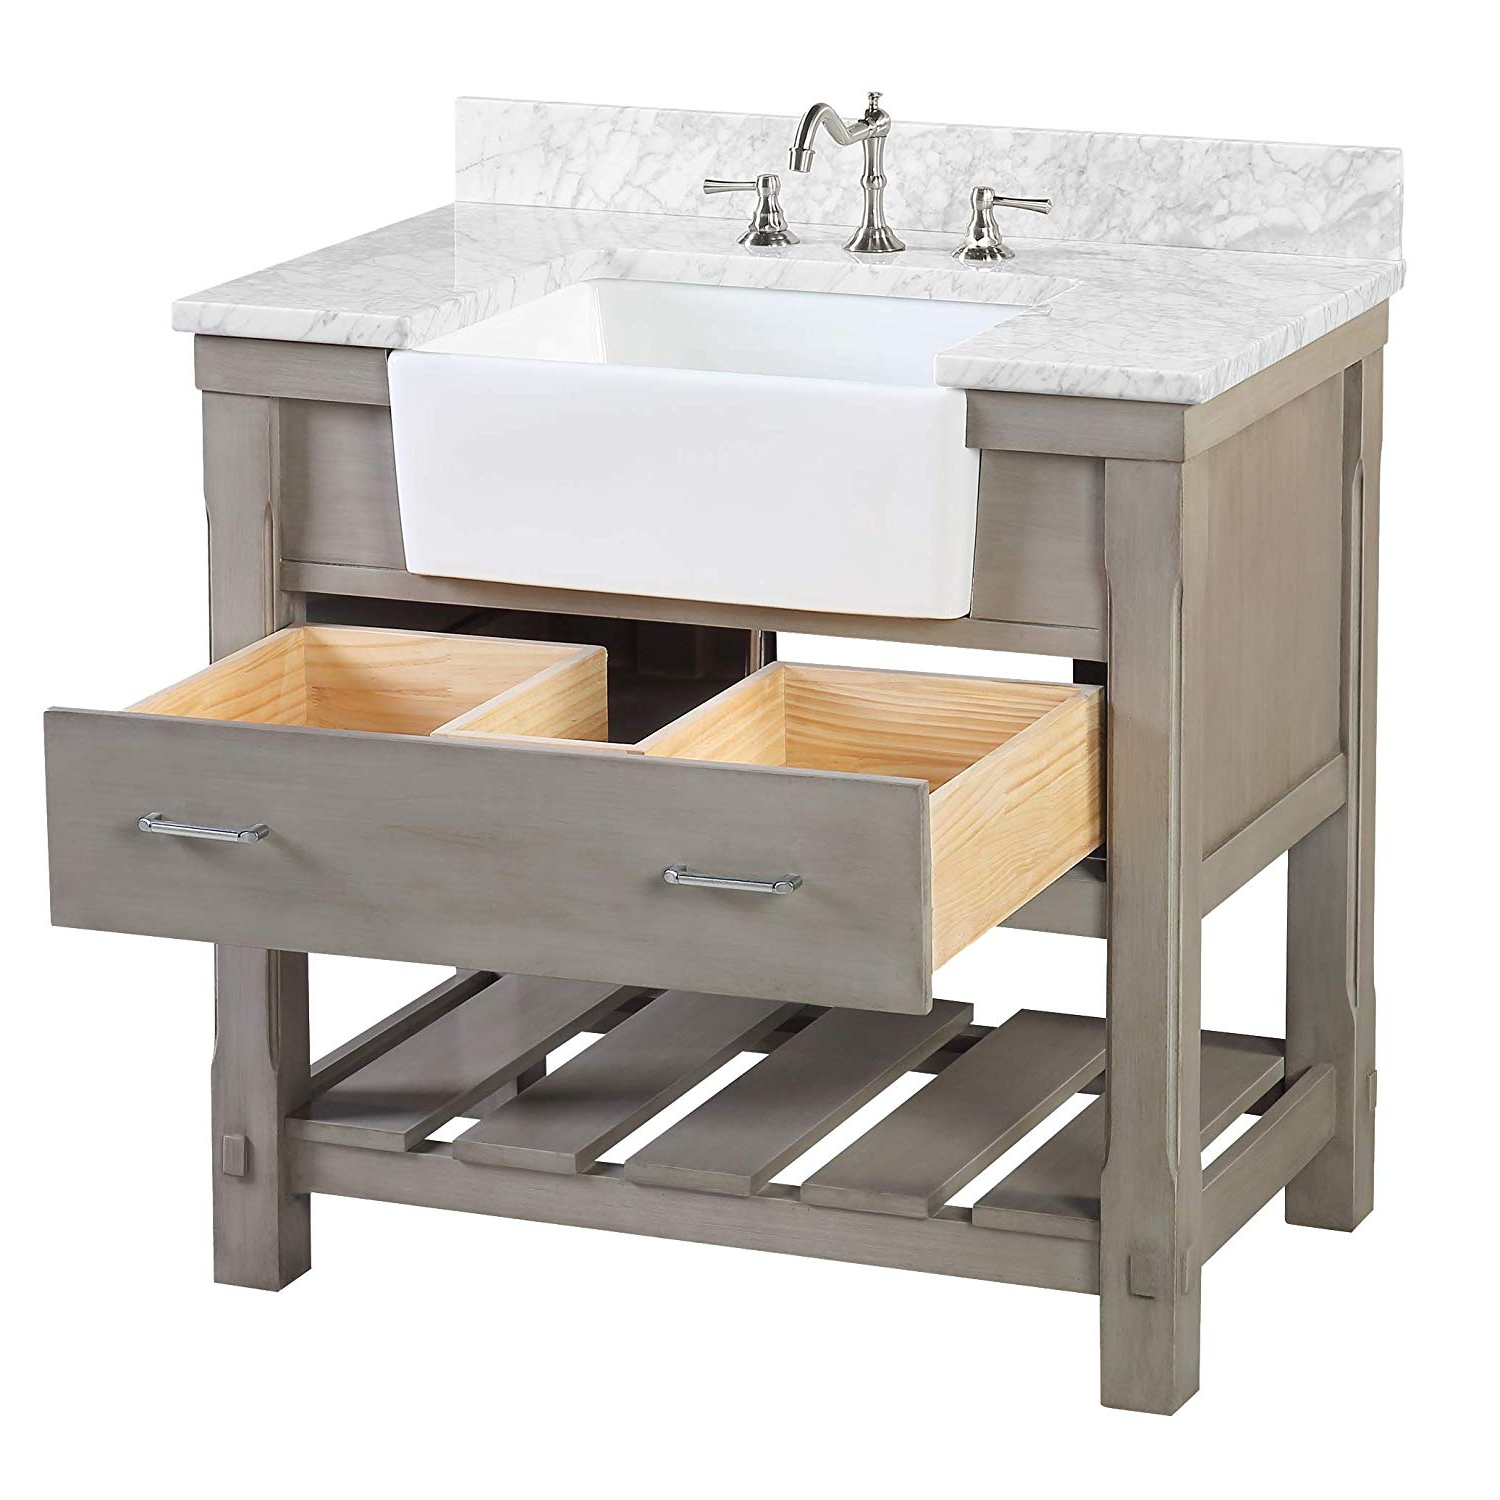 Thick White Marble Slab Dining Tables With Weathered Grey Finish Inside Newest Charlotte 36 Inch Bathroom Vanity (Carrara/weathered Gray): Includes A  Carrara Marble Countertop, Royal Blue Cabinet With Soft Close Drawers, And (View 18 of 25)